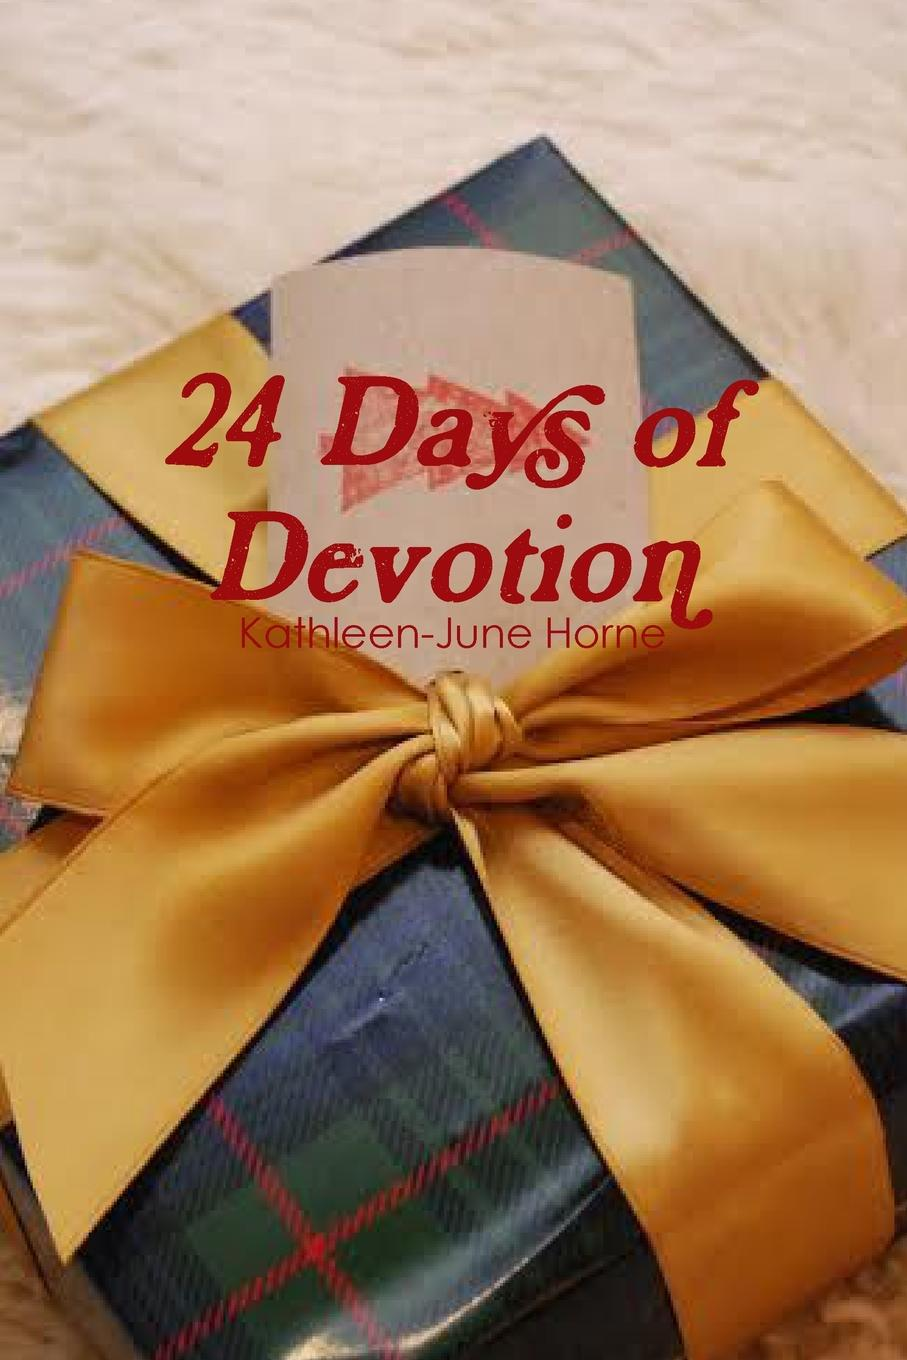 Kathleen-June Horne 24 Days of Devotion a perfect day